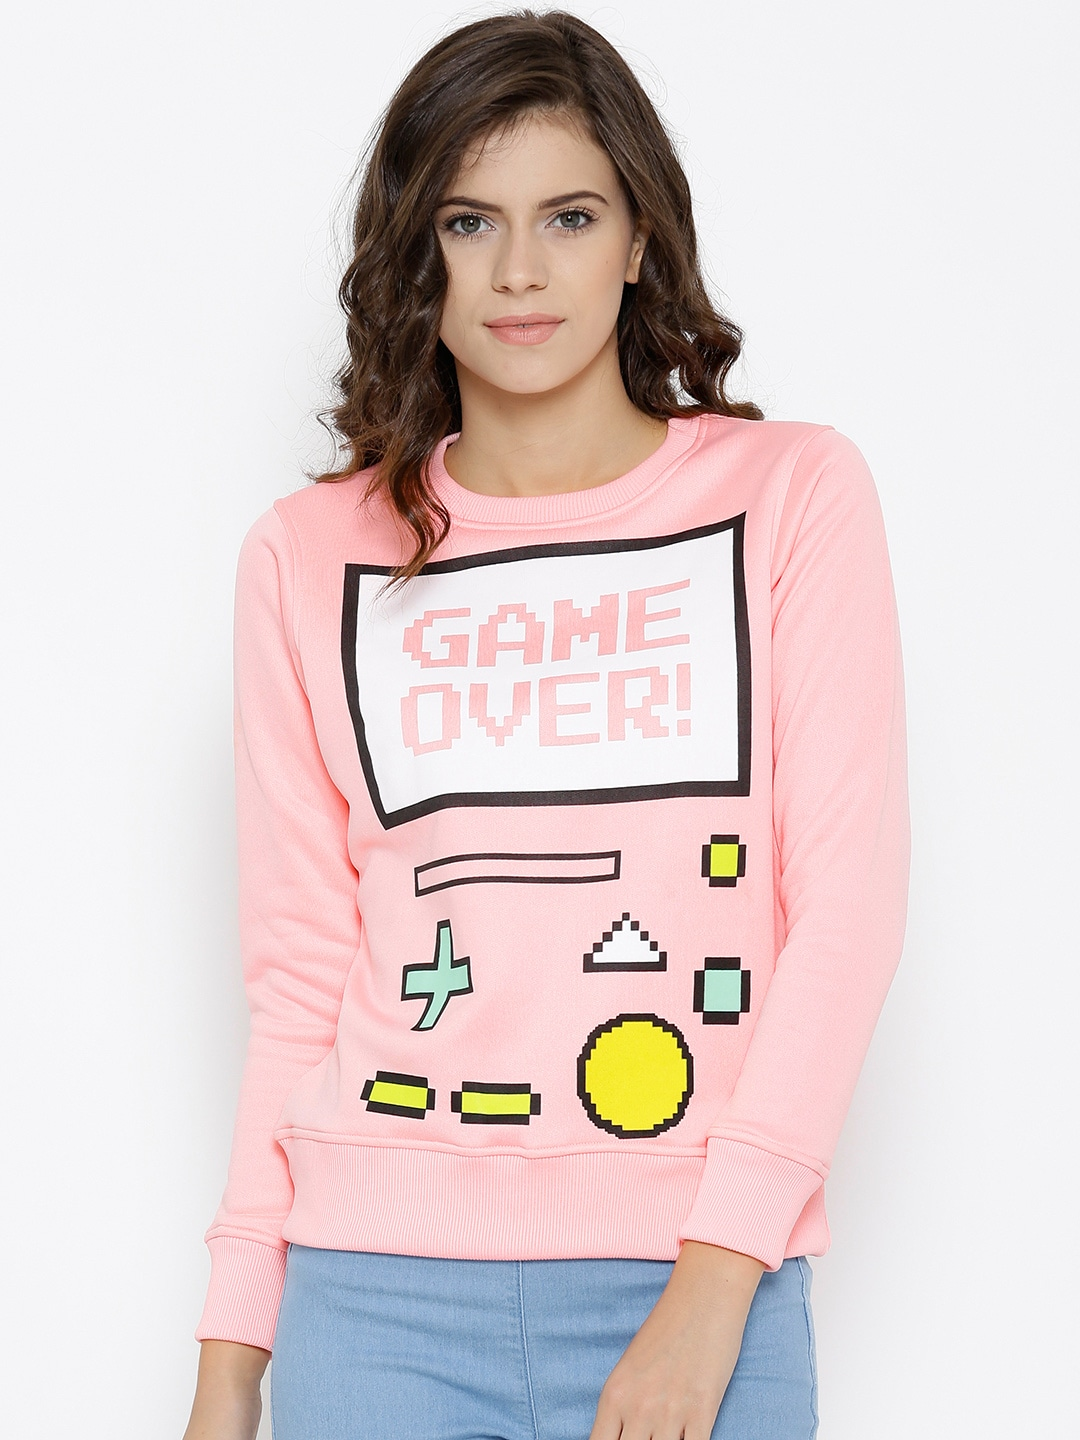 Sweatshirts for Women - Buy Women's Sweatshirts Online